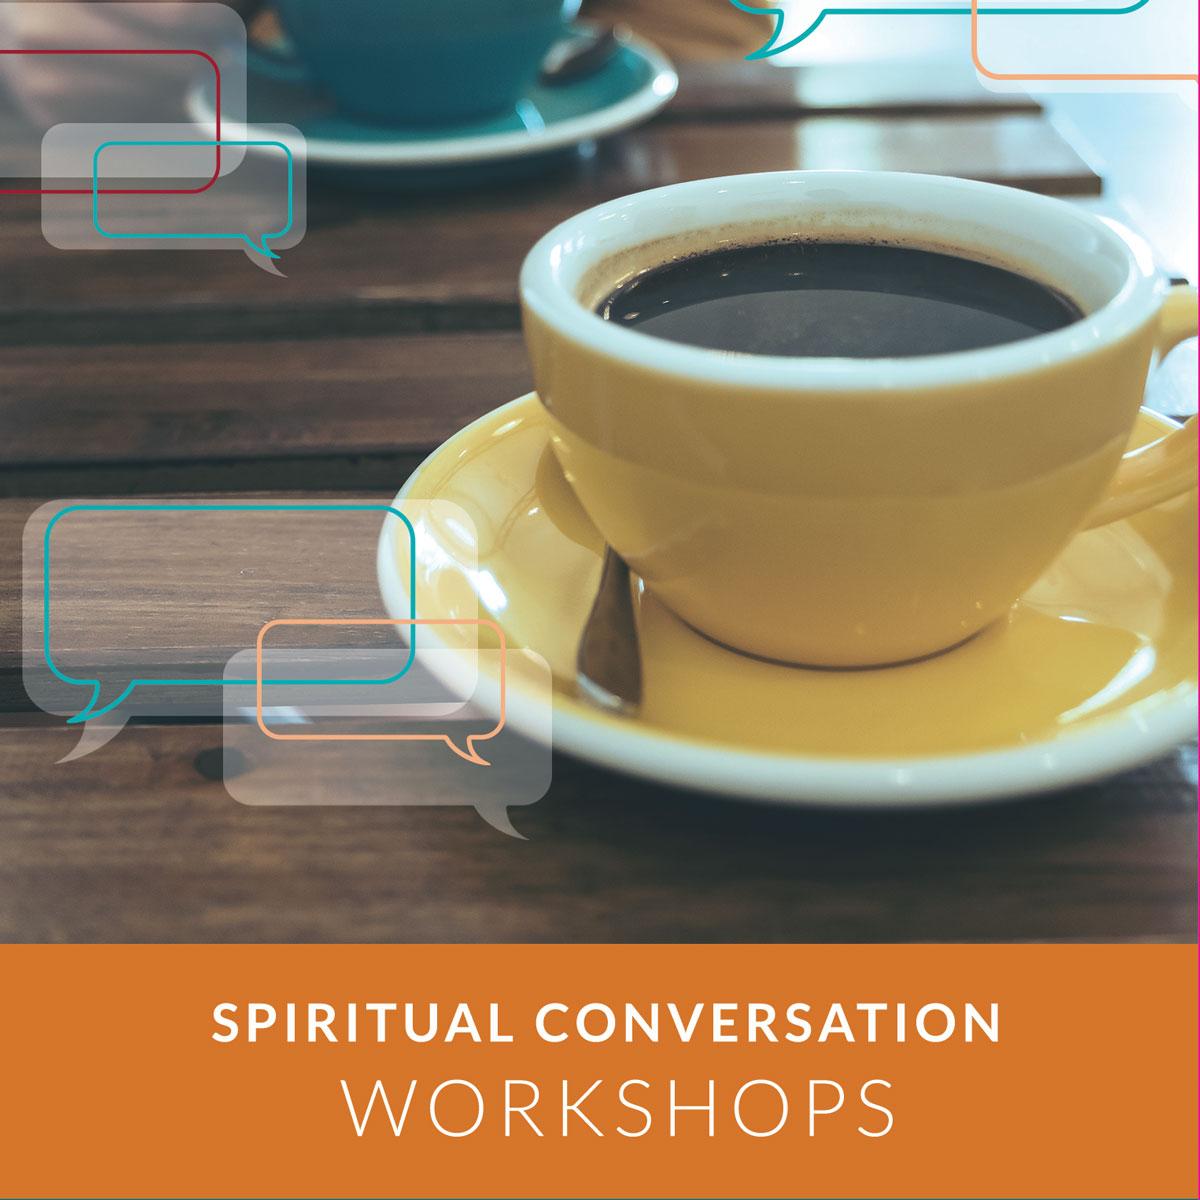 The Eager Conversationalist/Spiritual Conversation Curve Workshops